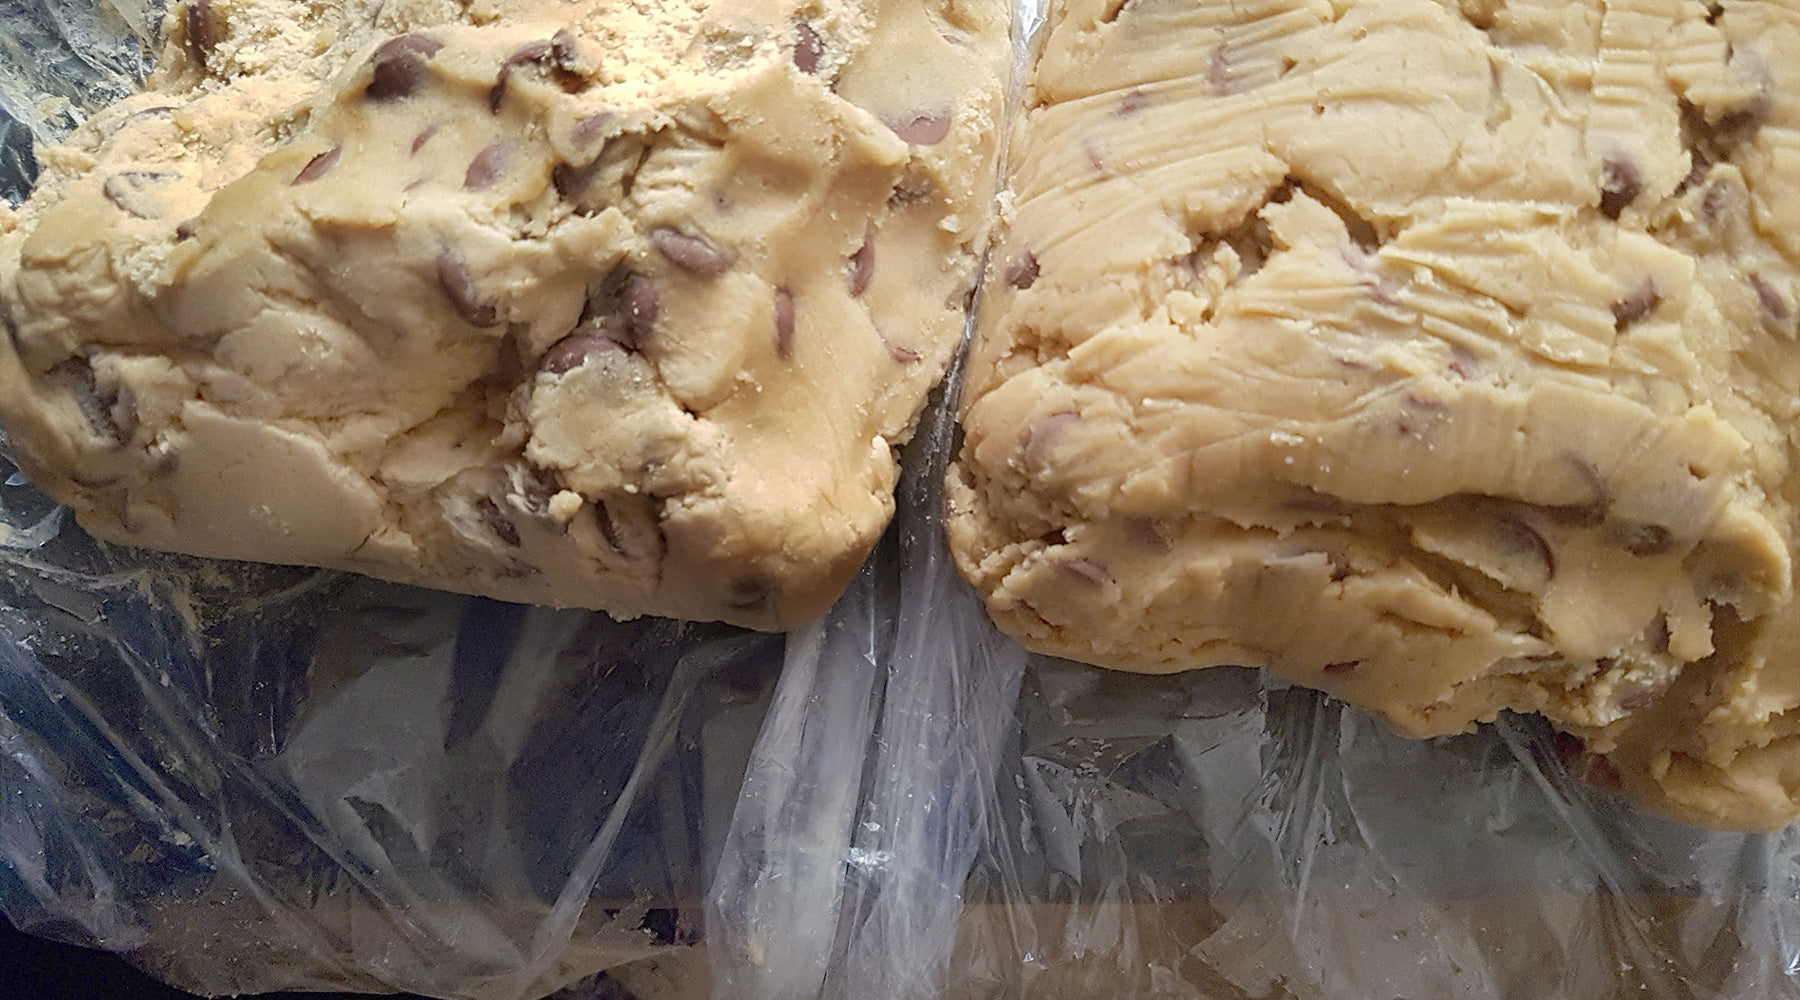 Two batches of chilled chocolate chip cookie dough